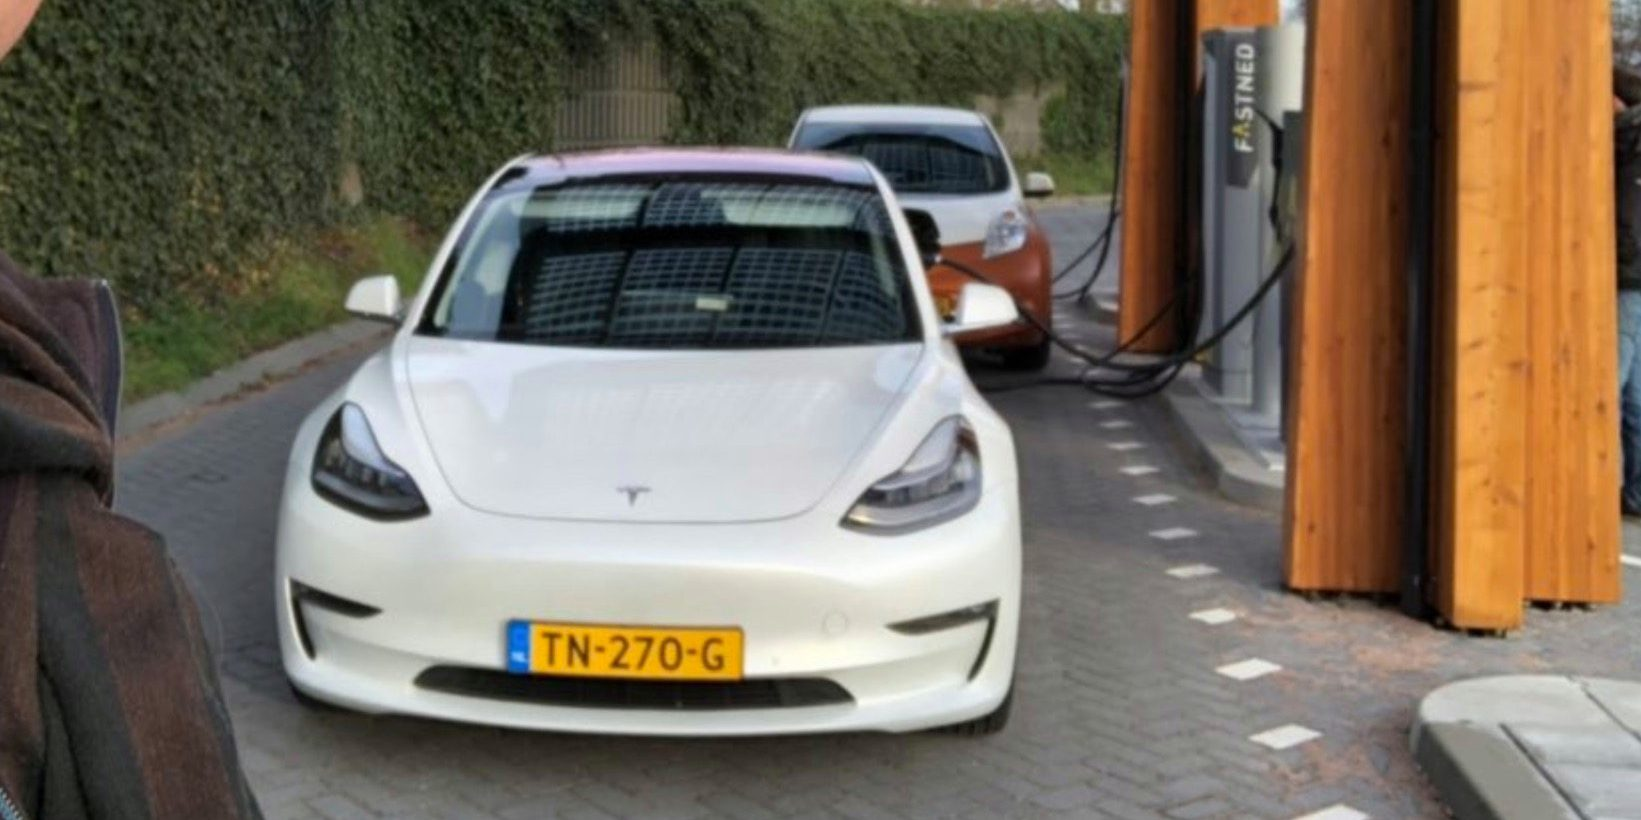 Tesla Model 3 reaches new record charge rate of 126 kW – faster on CCS than Superchargers